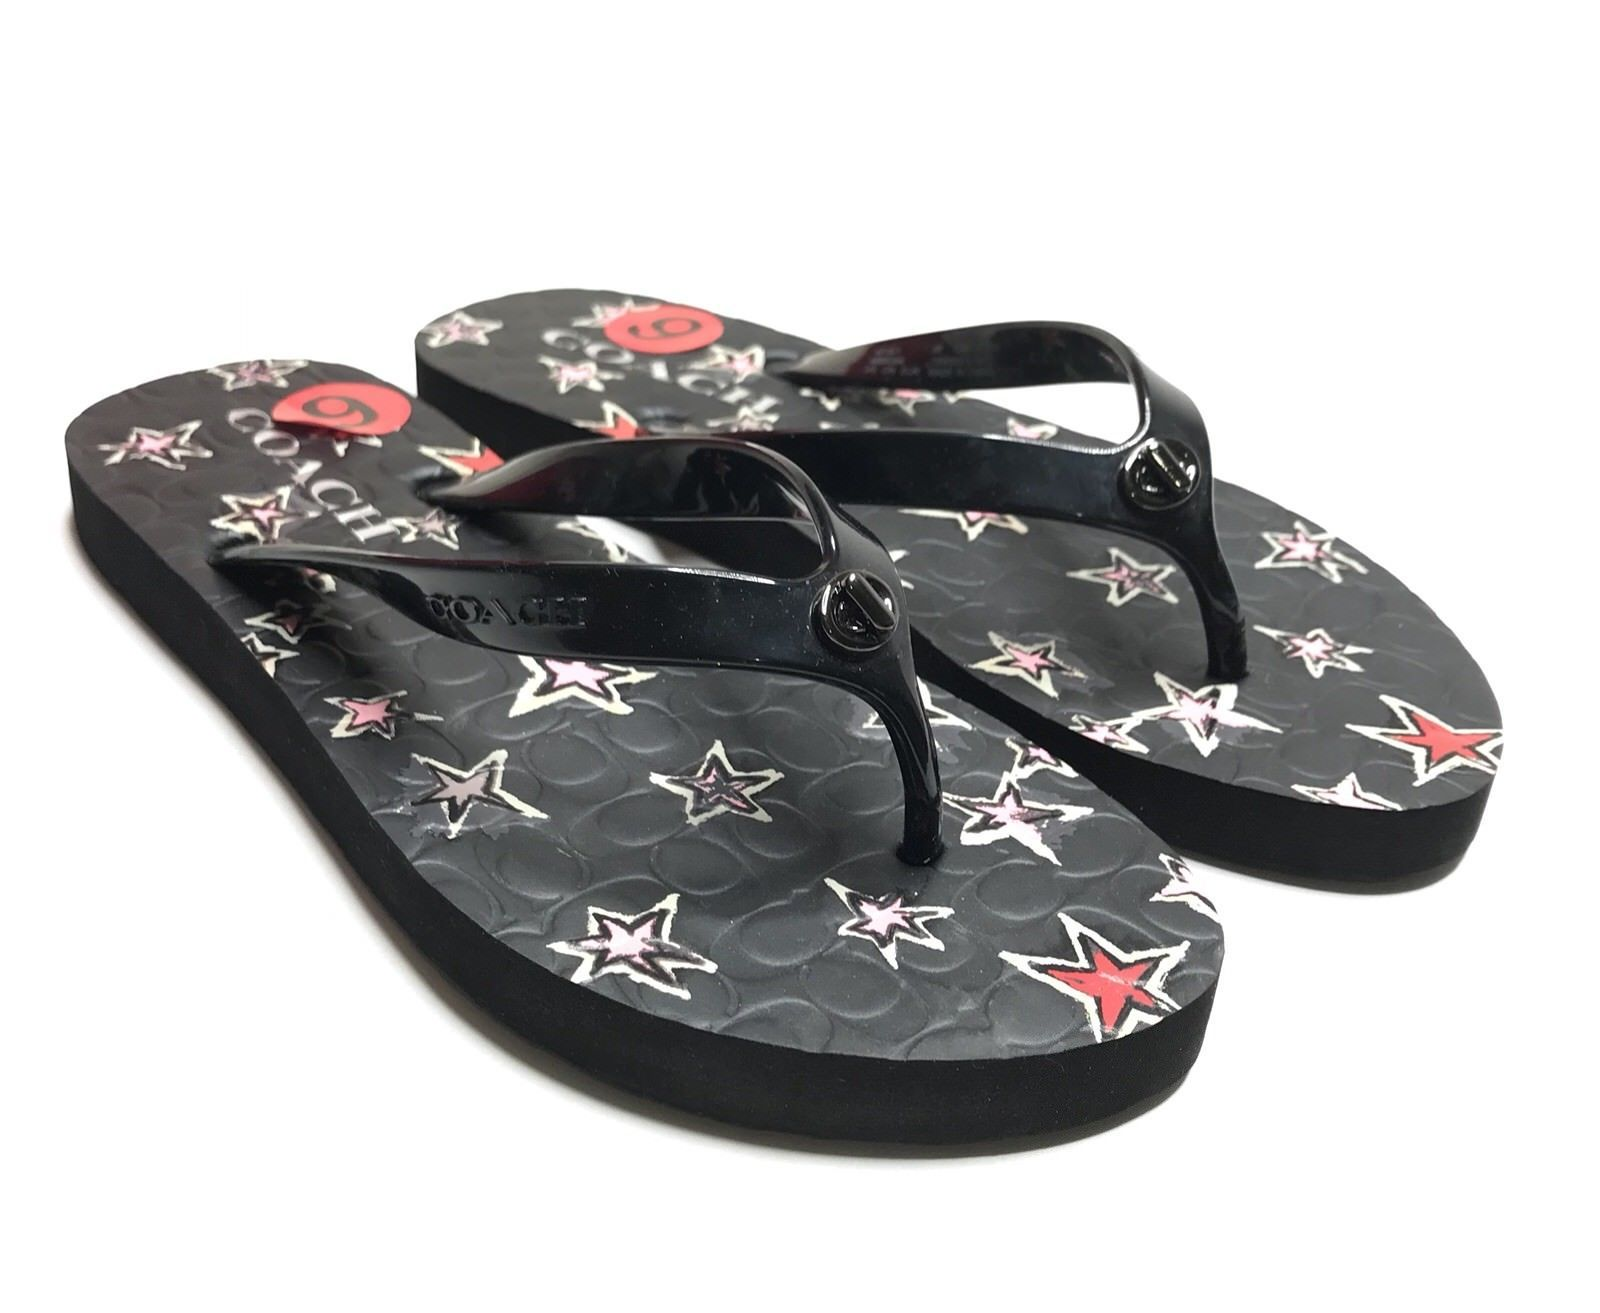 37b9a49e4 Coach Flip Flops NEW Women Size 5-6 Black and 30 similar items. 57